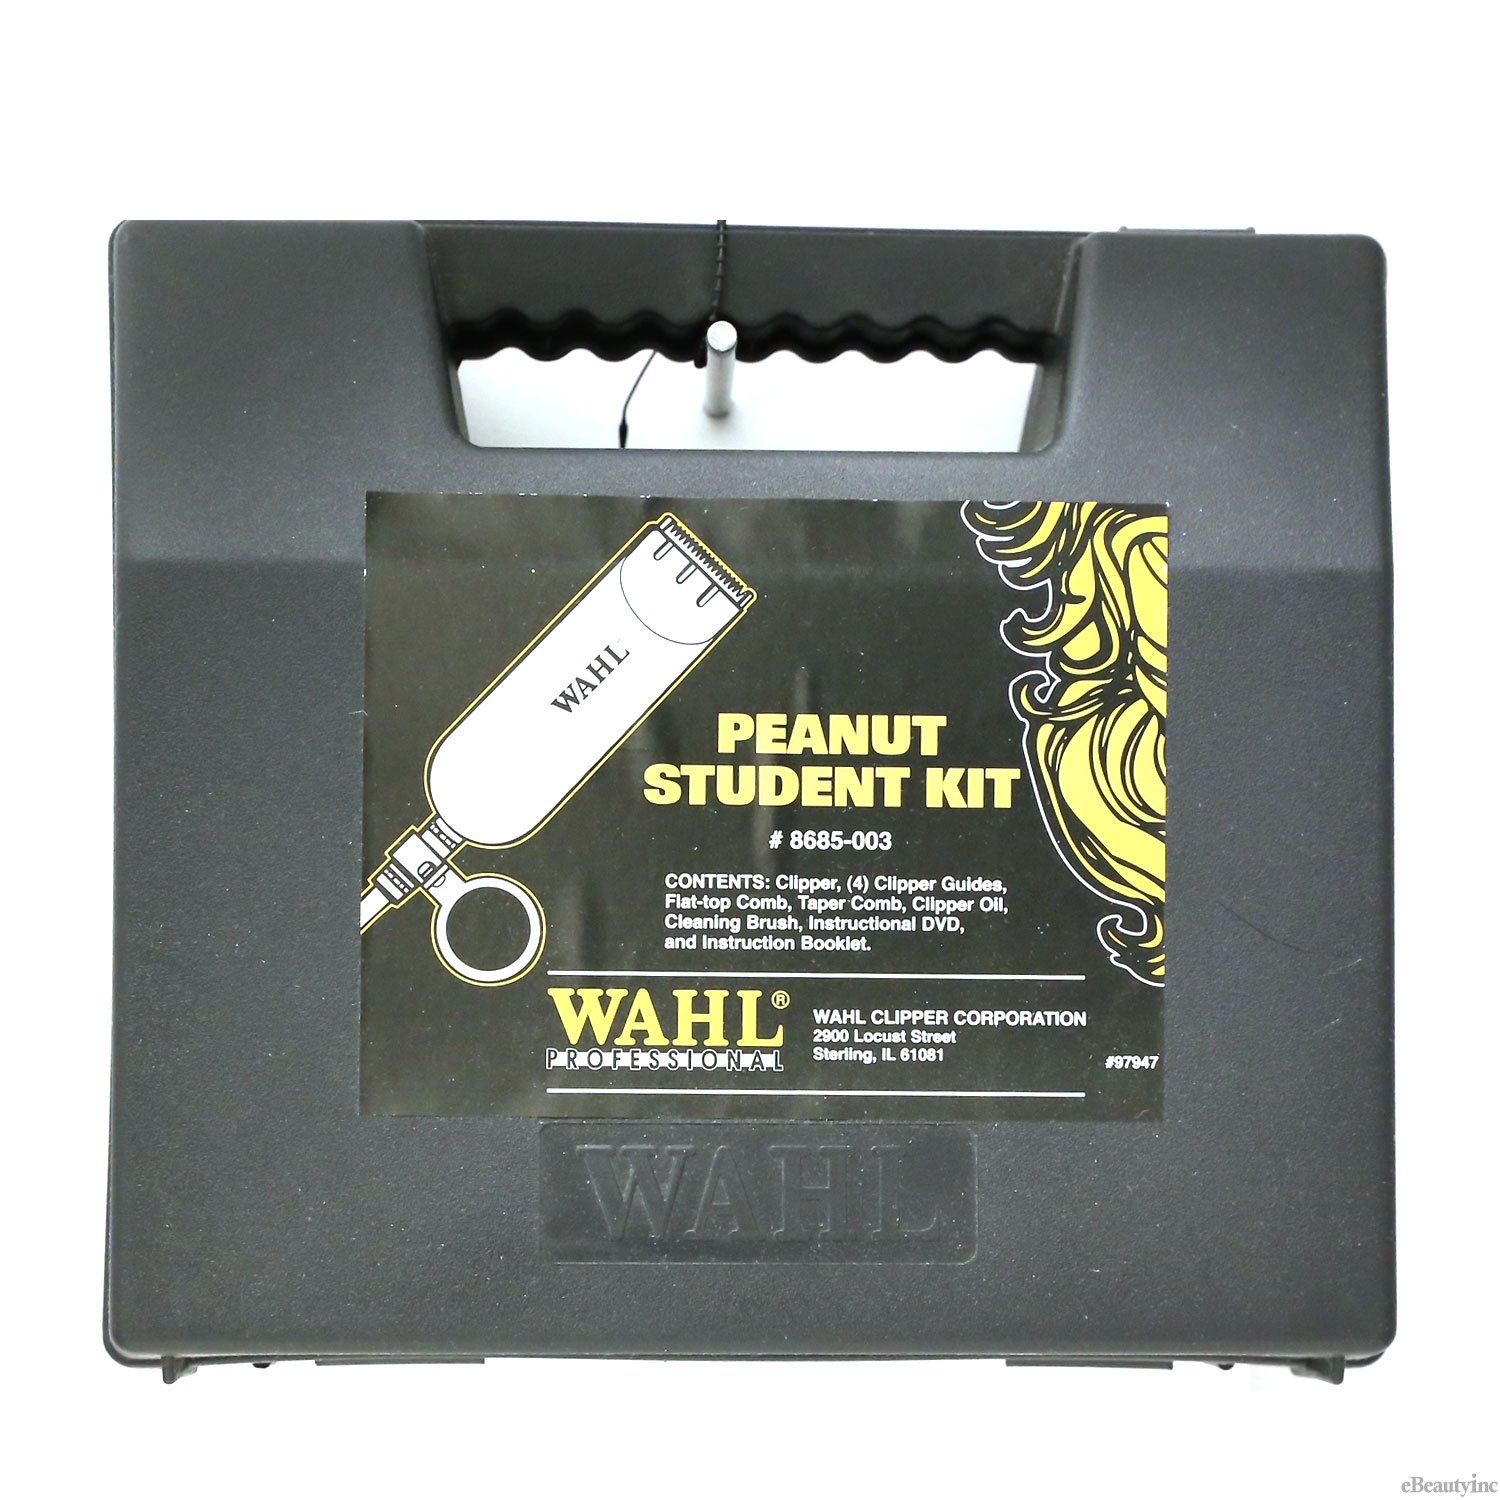 Wahl Peanut Student Trimmer Kit with DVD #8685-003